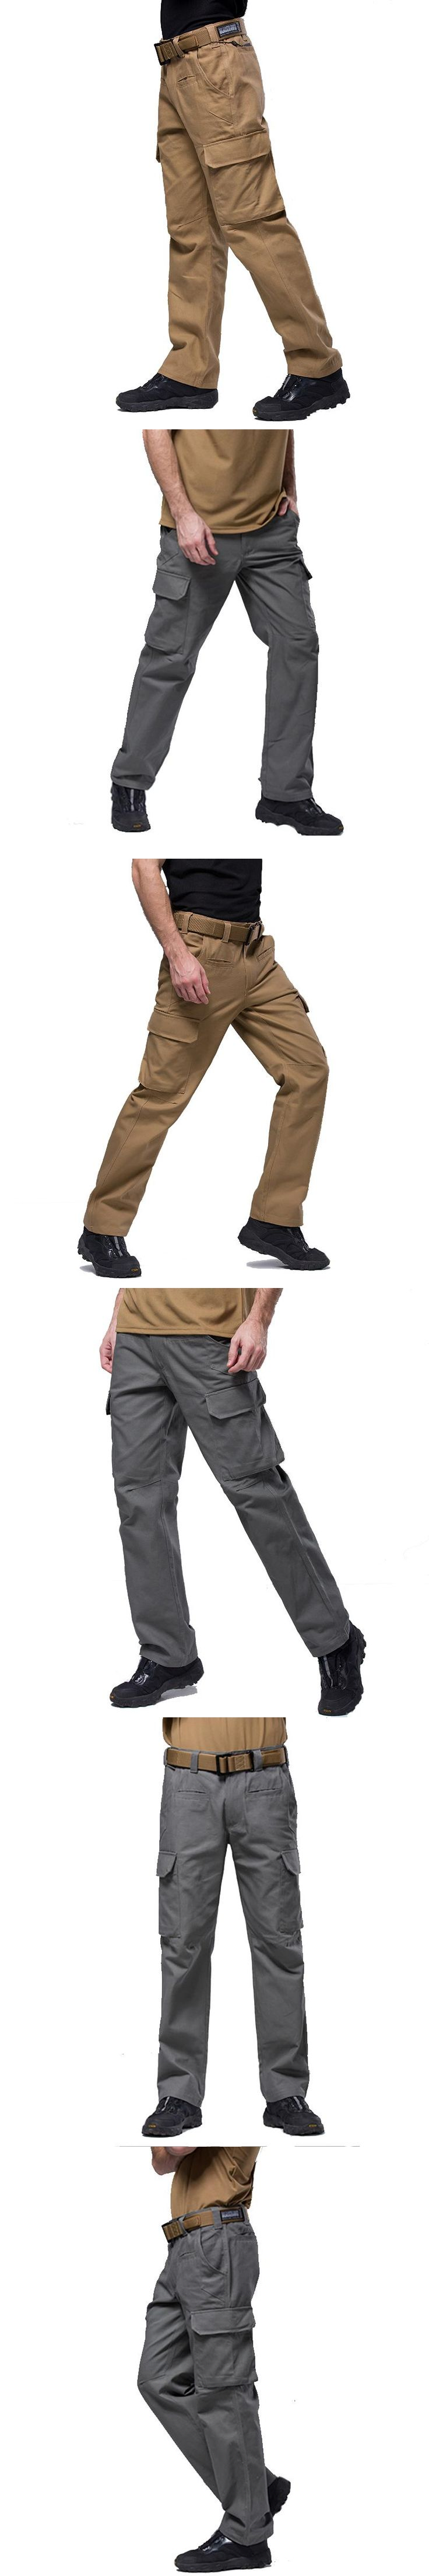 High Quality Outdoors Loose Breathable Military Pantalon Homme Army Combat Tactical Multi-pocket Cargo Pants Men Casual Trousers